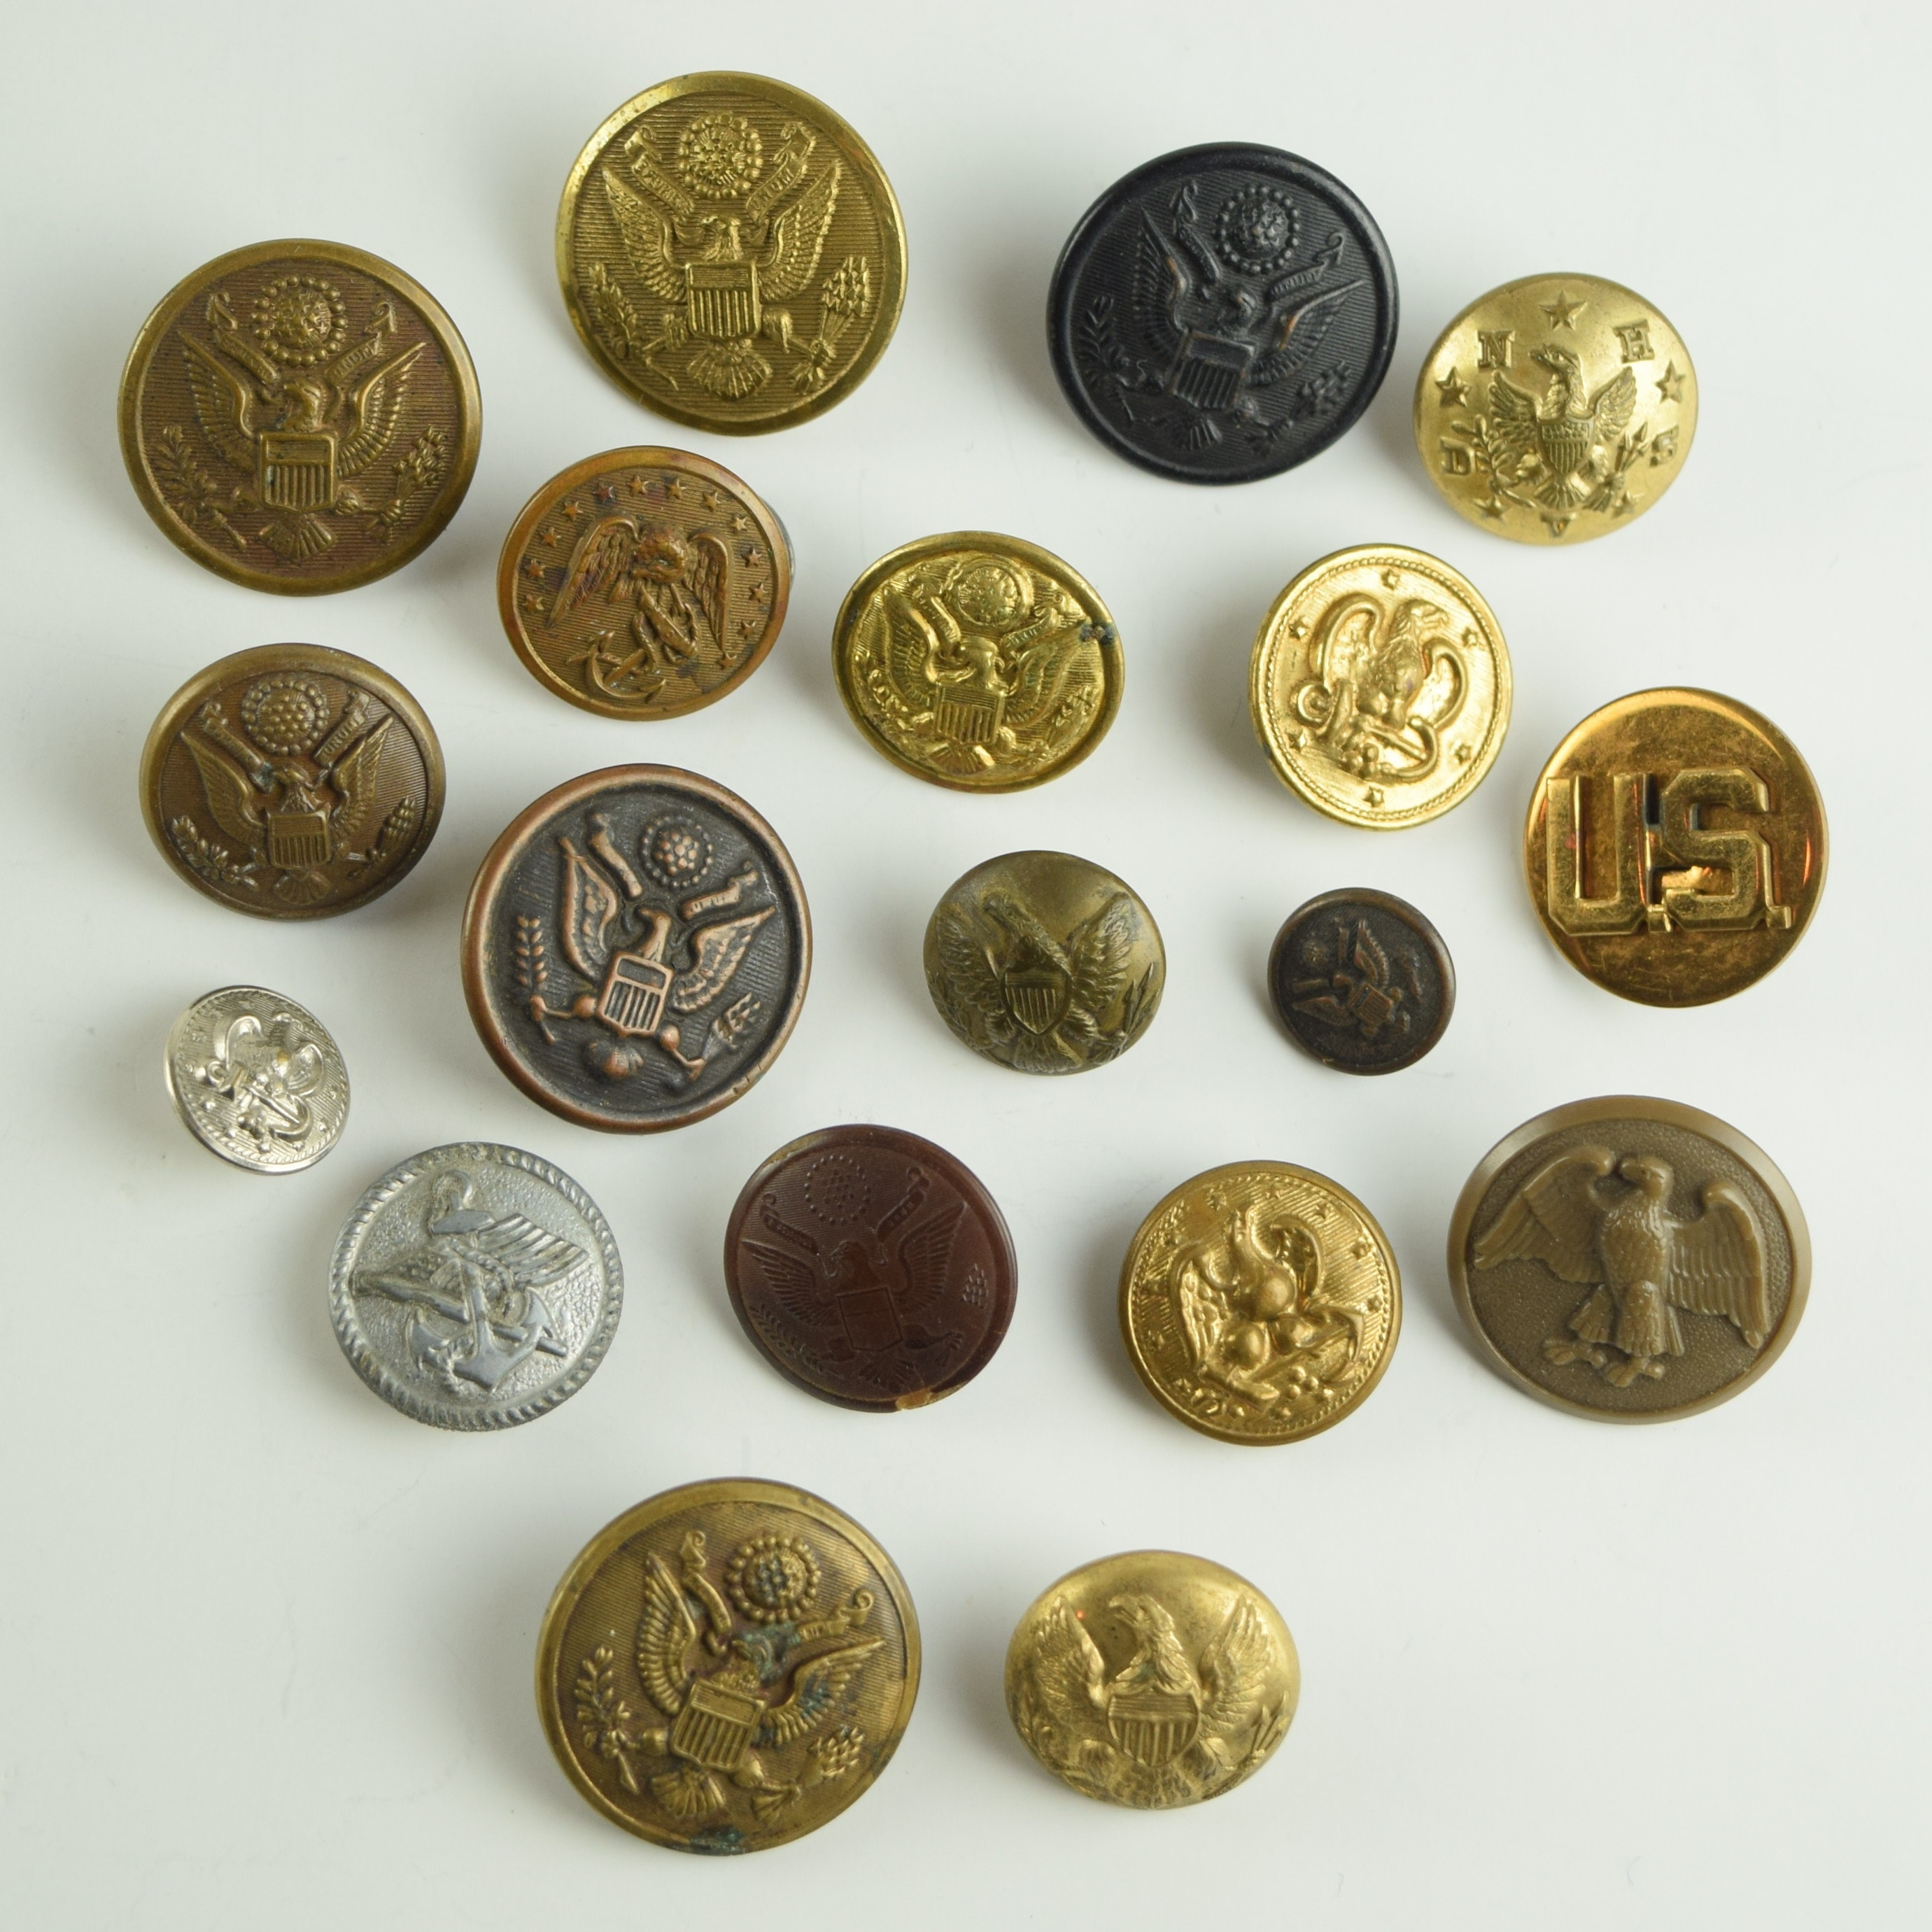 dating us military buttons Amazoncom: uniform buttons of the united states, 1776-1865: button makers of the united states, 1776-1865 button suppliers to the confederate states, 1800-1865 antebellum and civil war buttons of us forces (9781577470243): warren k.